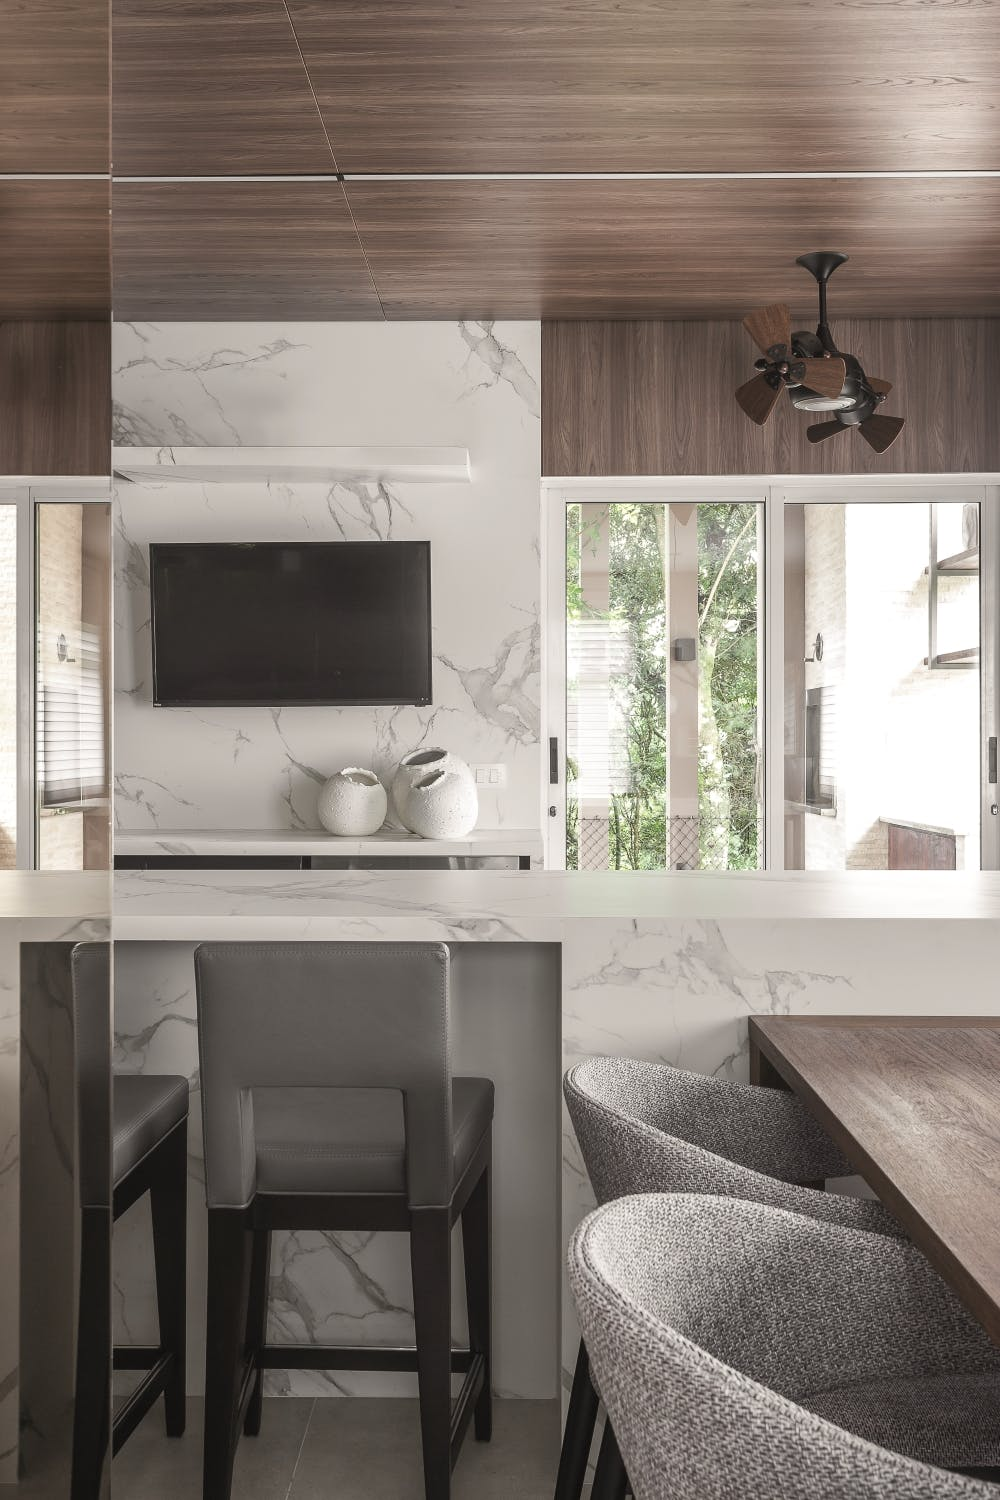 Image of EM 10 1 in Talita Nogueira: Interior architecture with different flavours - Cosentino